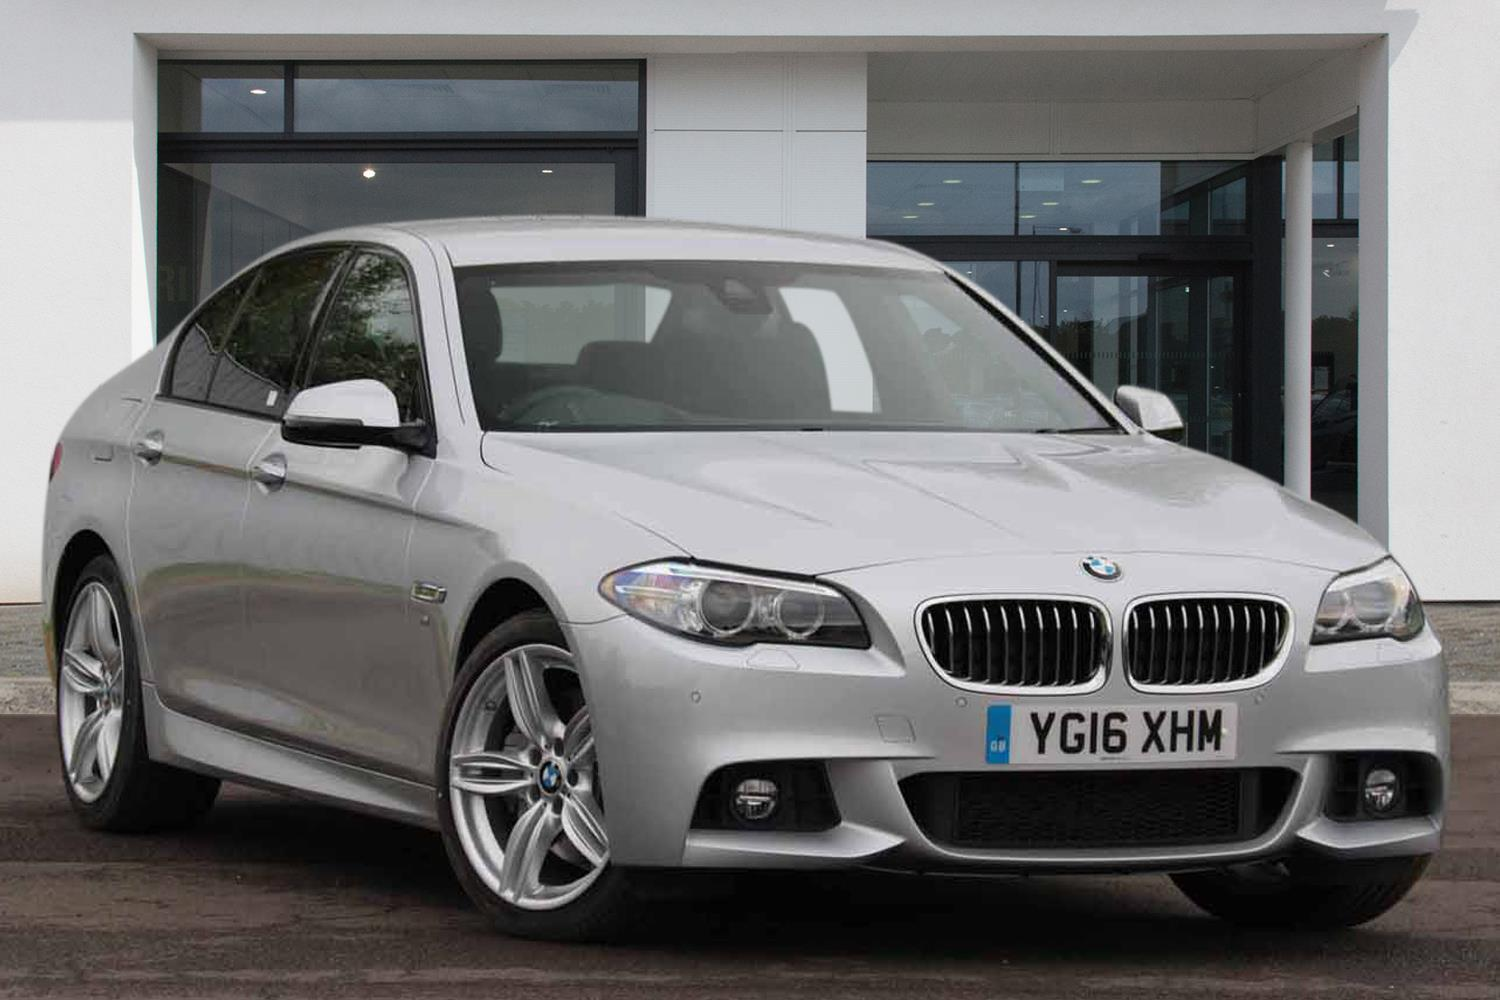 BMW 5 Series Saloon YG16XHM - Image 7